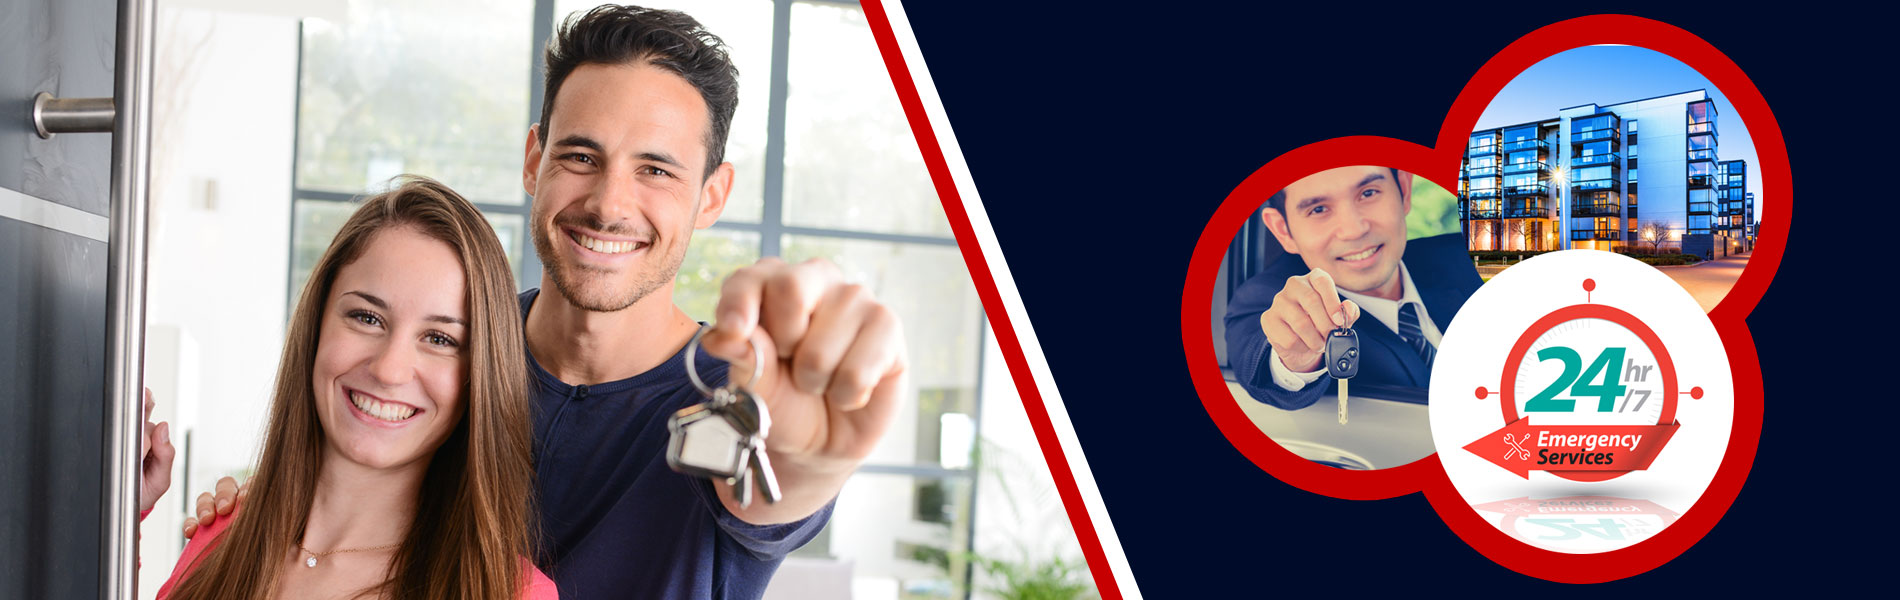 White Plains Lock And Locksmith White Plains, NY 914-292-5140